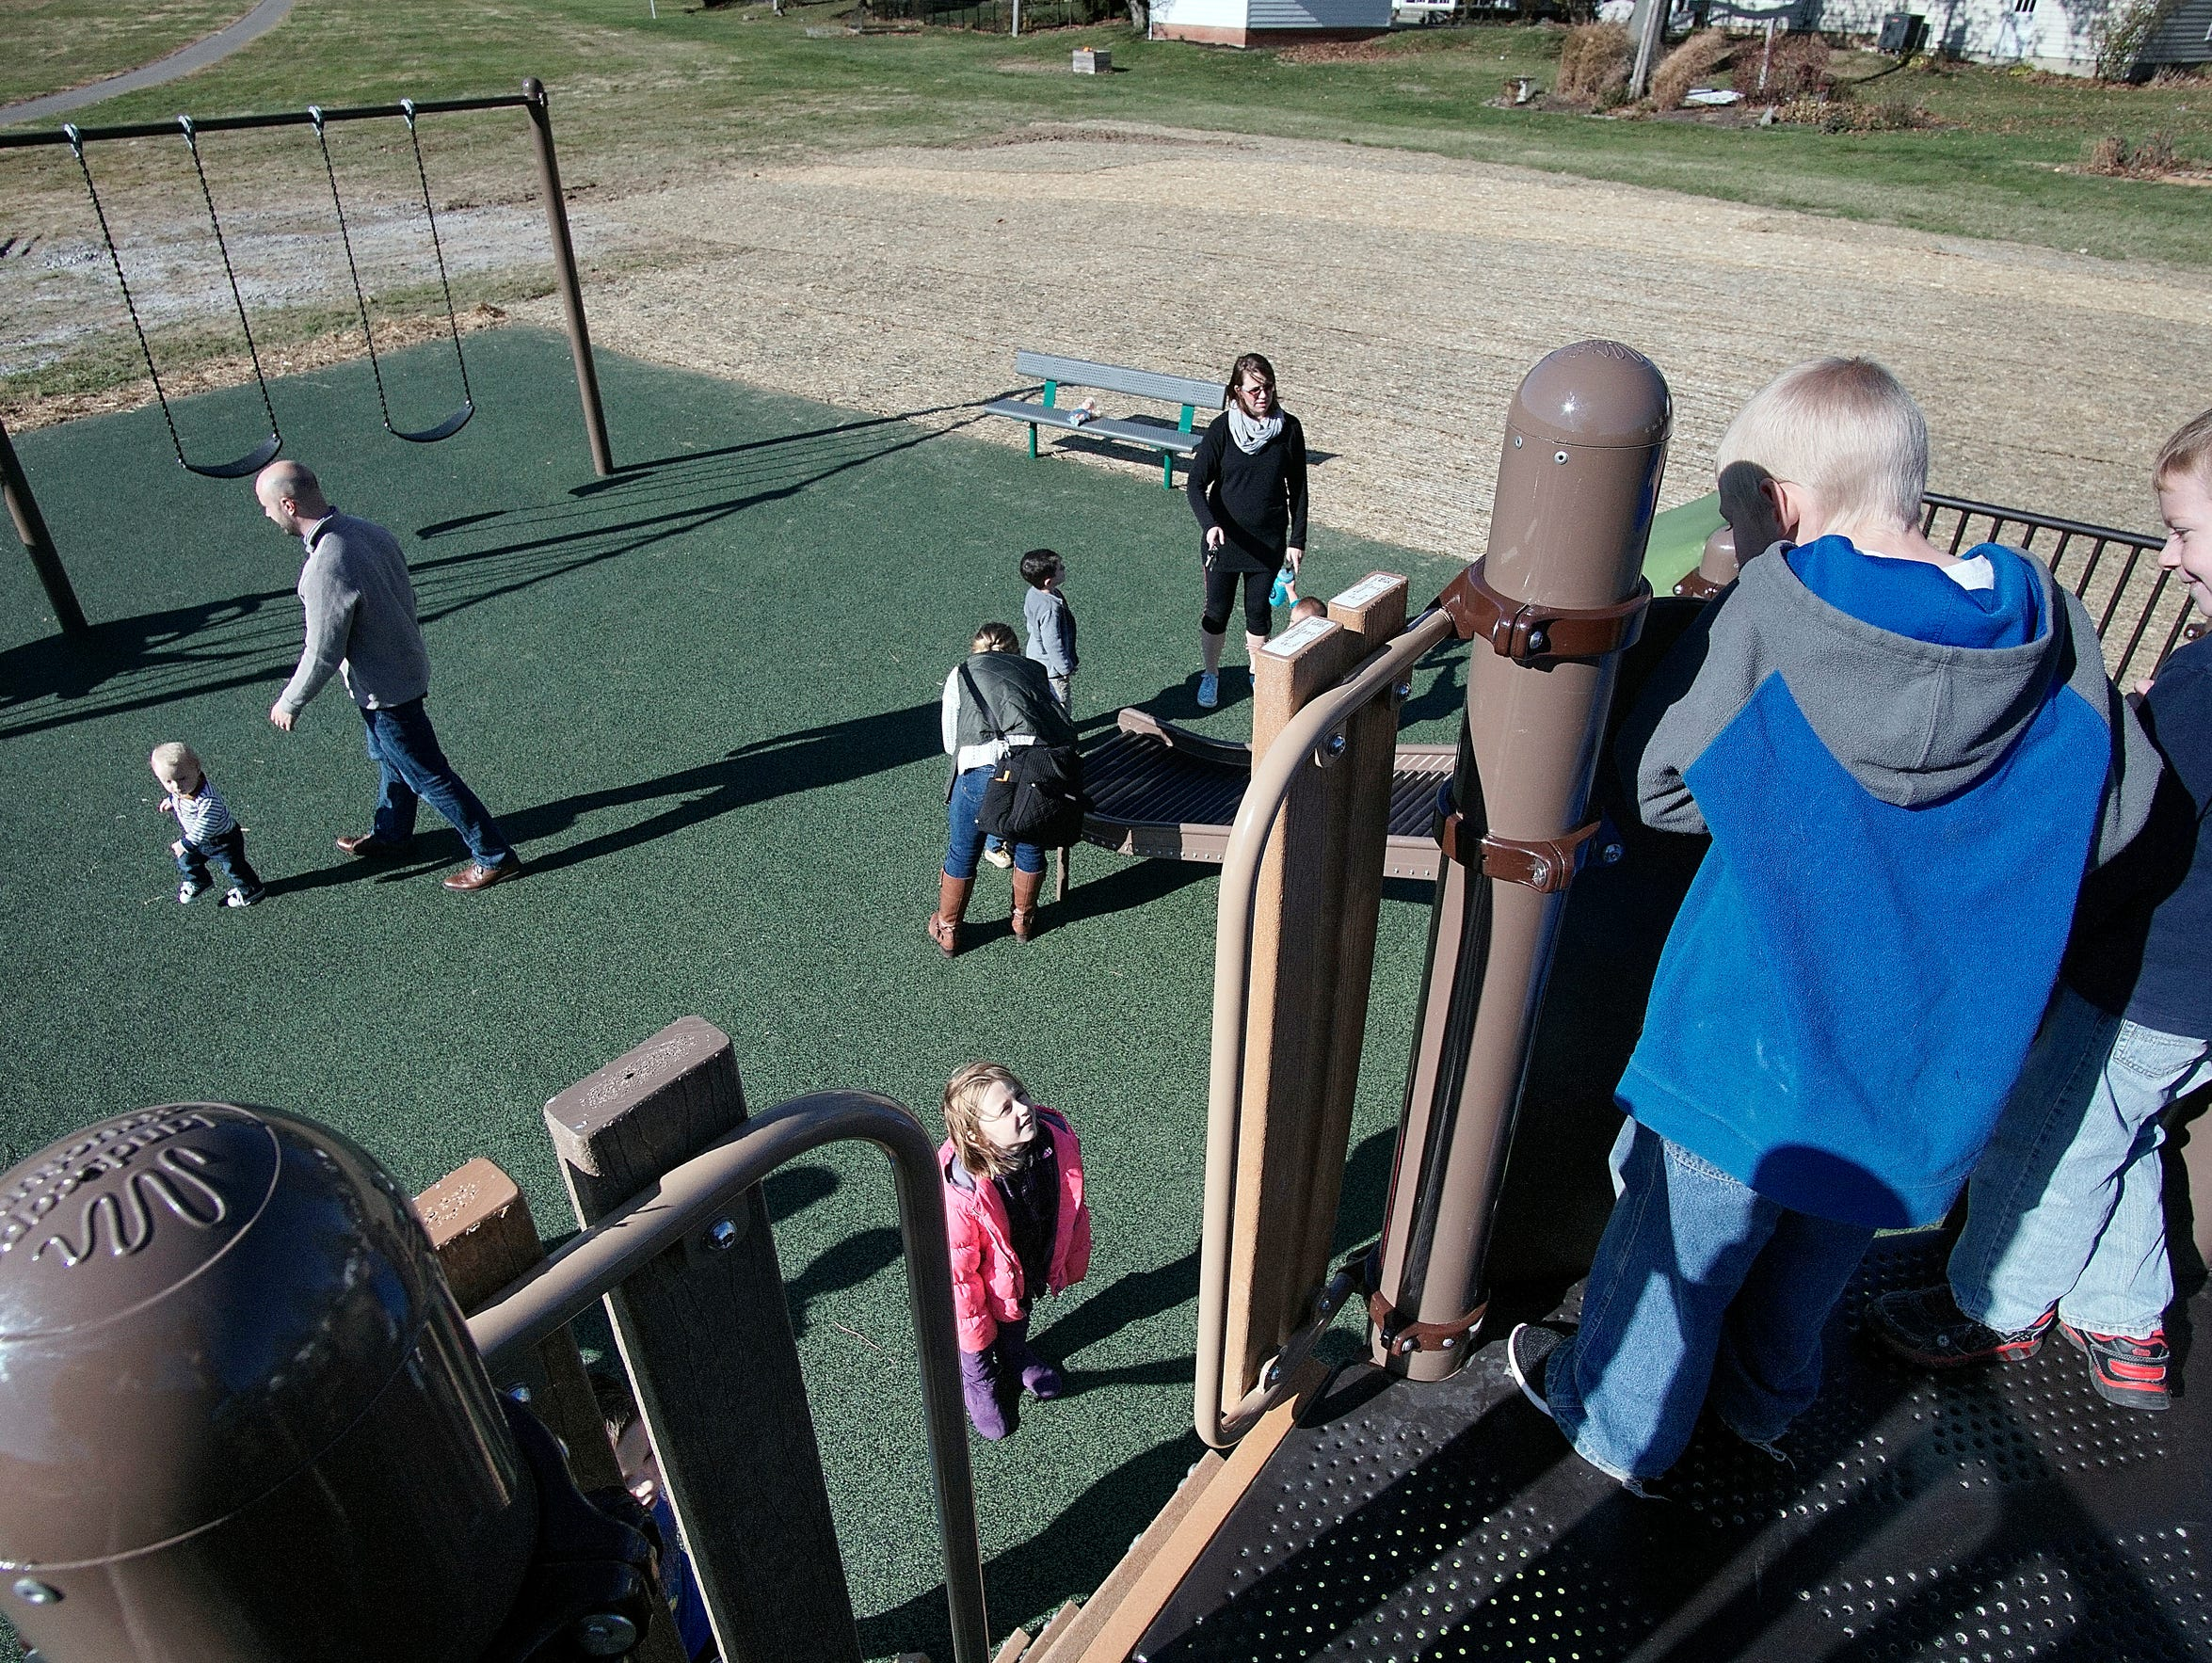 Kids play Sunday morning in a new playground designed